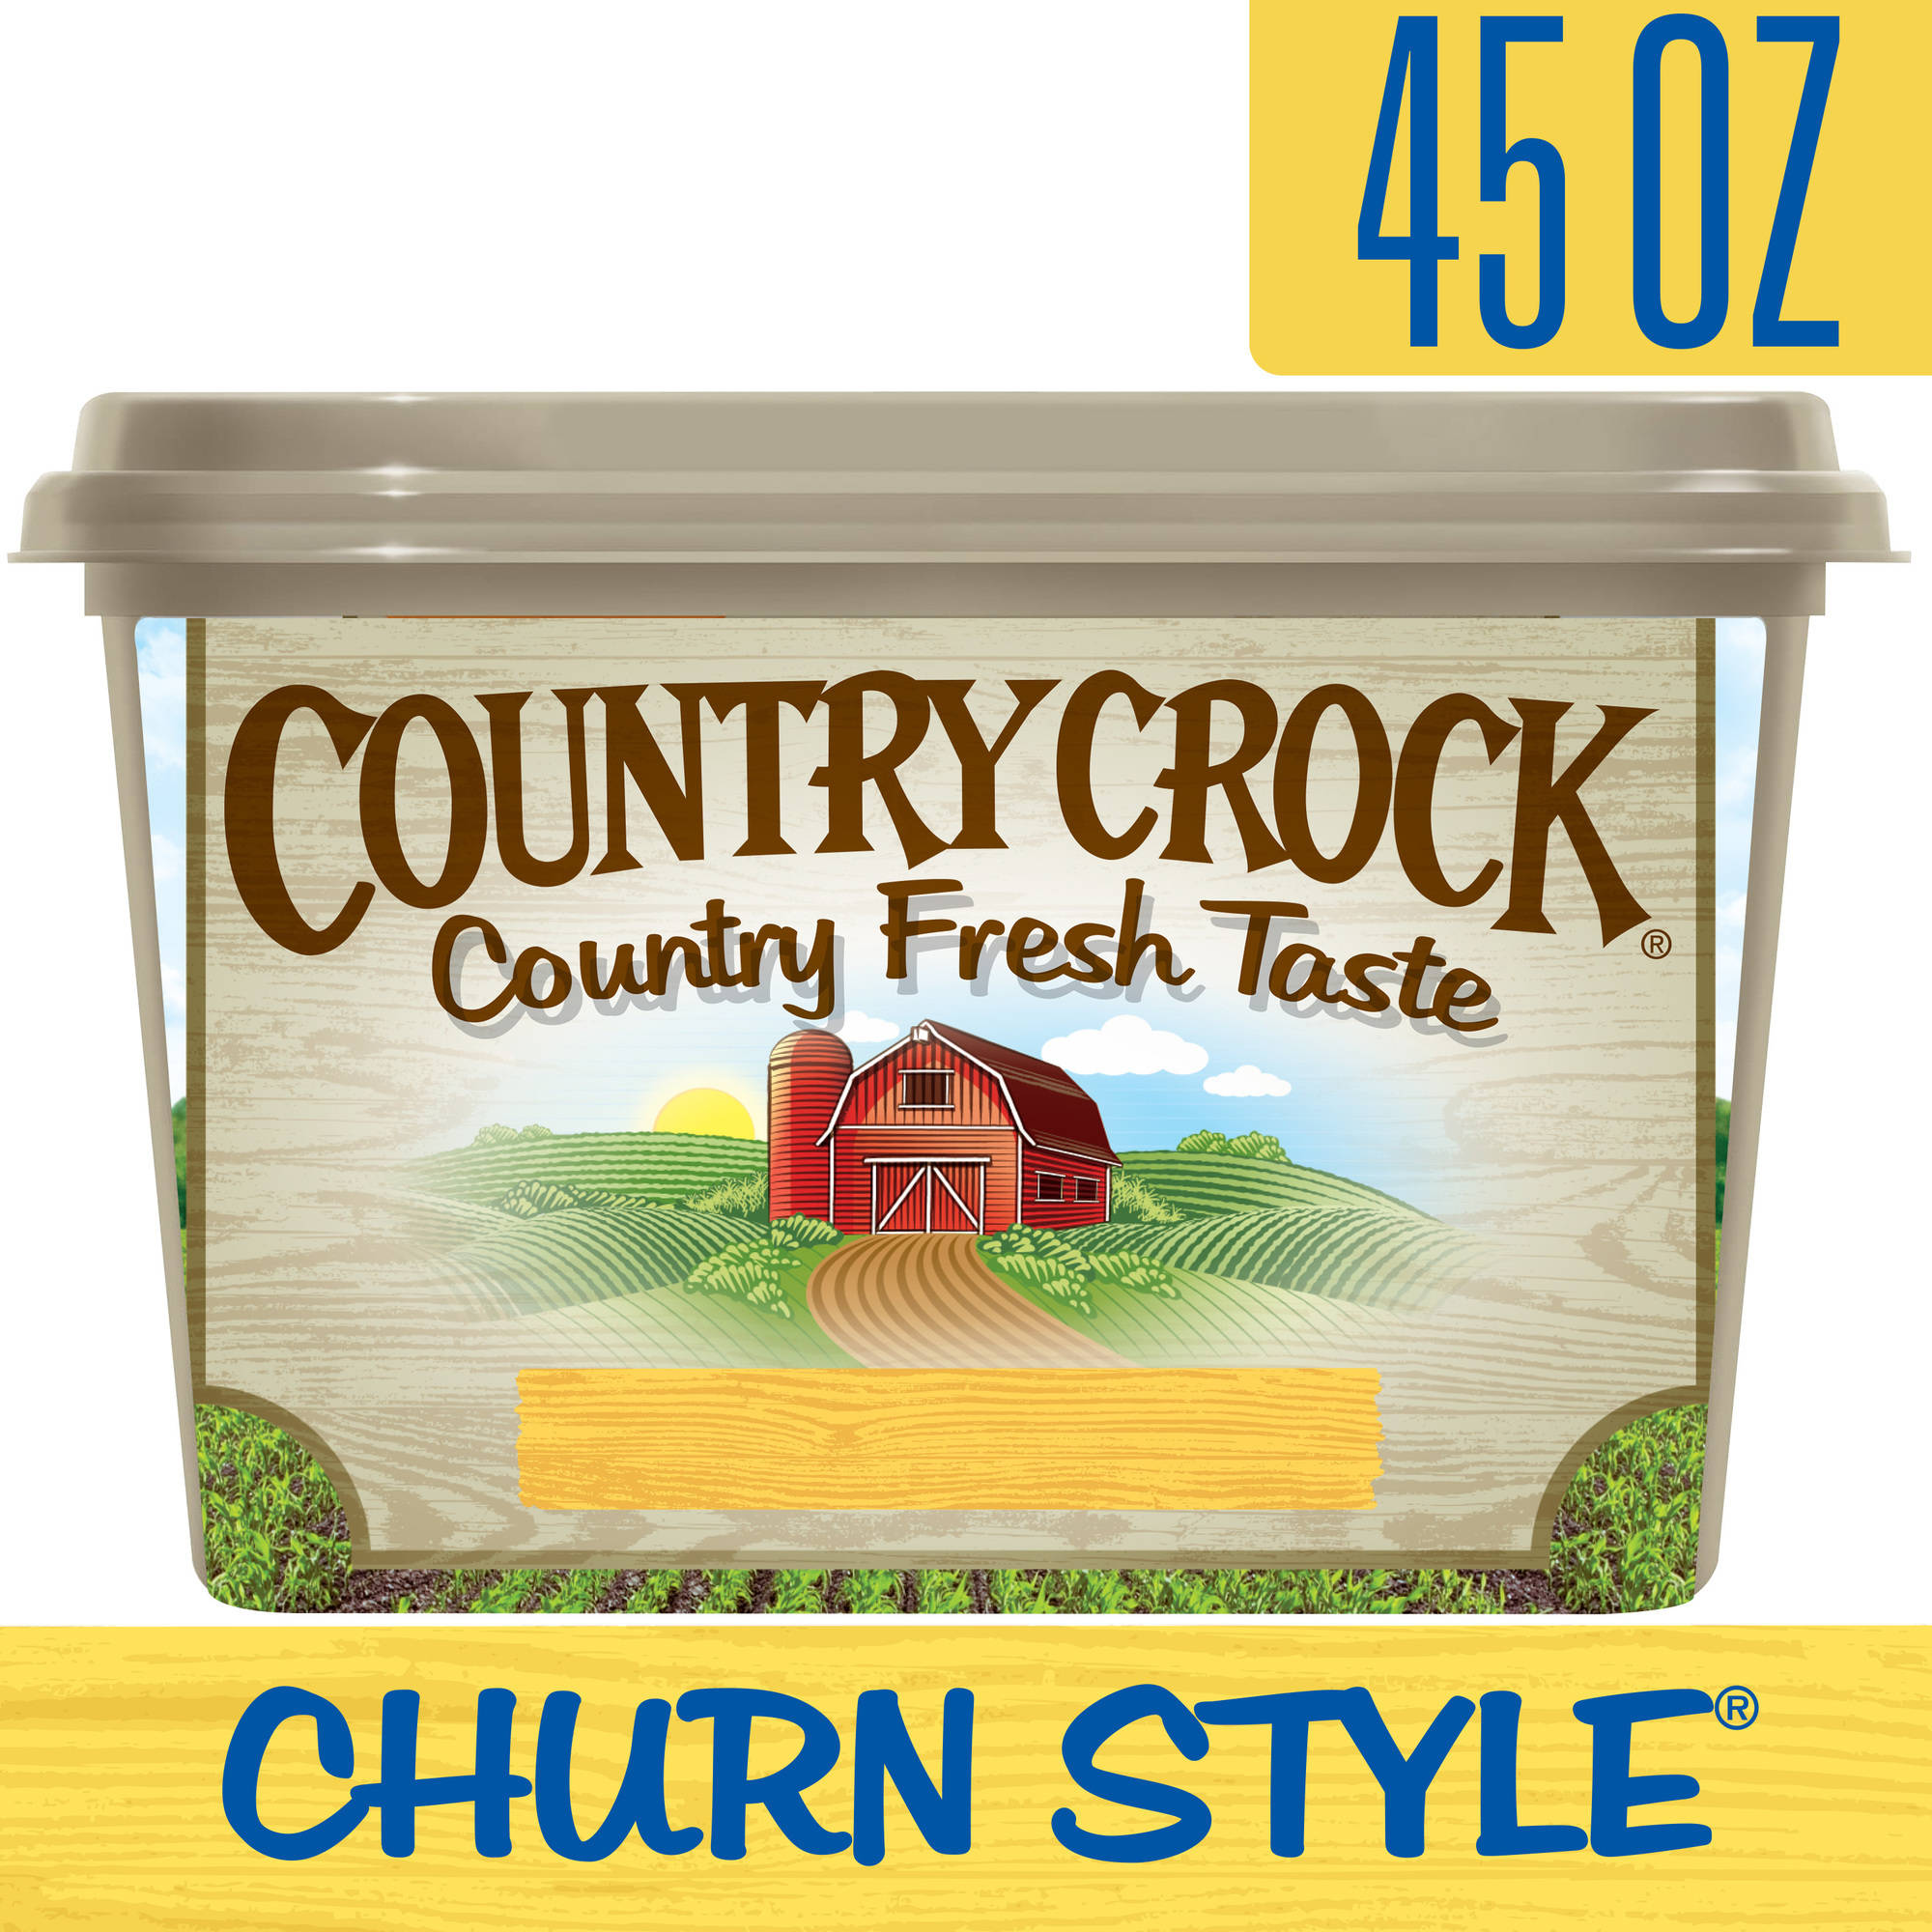 Country Crock Churn Style Vegetable Oil Spread Tub, 45 oz